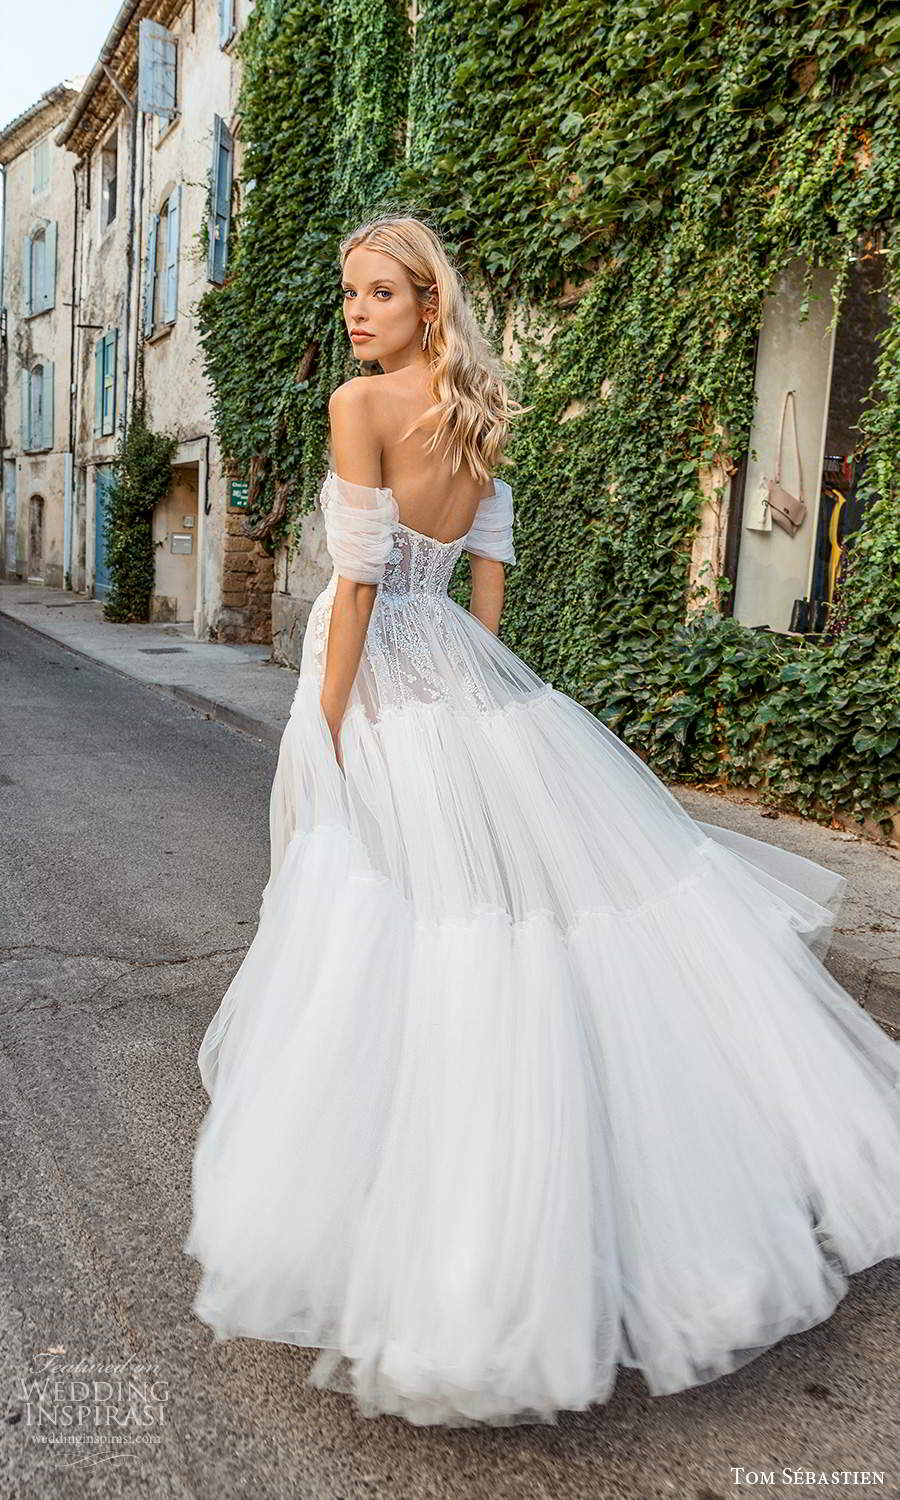 tom sebastien 2021 bridal provence off shoulder straps sweetheart neckline heavily embellished bodice a line ball gown wedding dress (5) bv